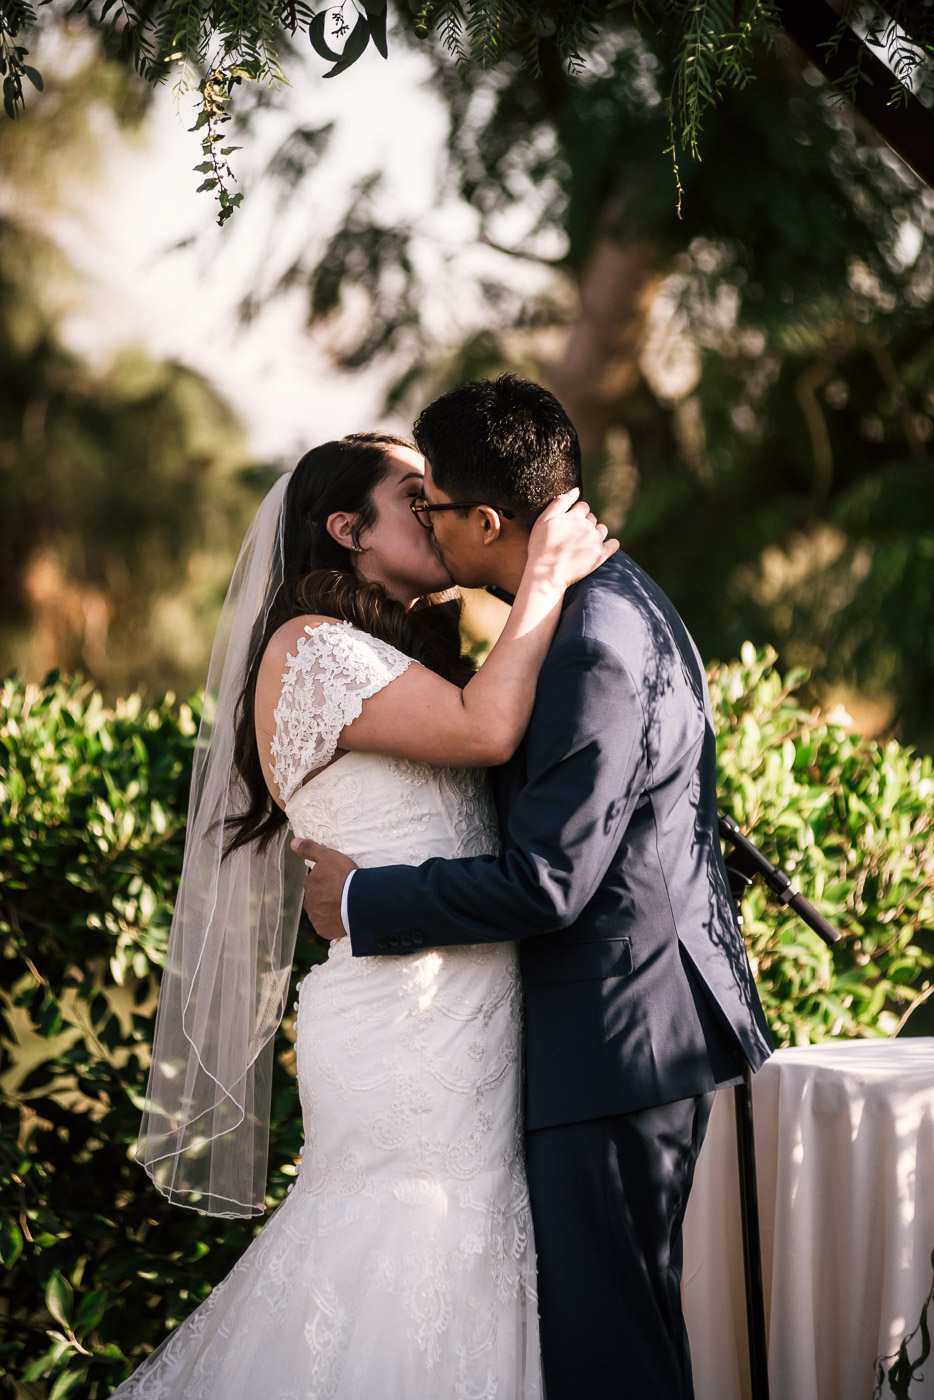 Newlywed couple has their first kiss after their ceremony at the Knollwood Country Club.